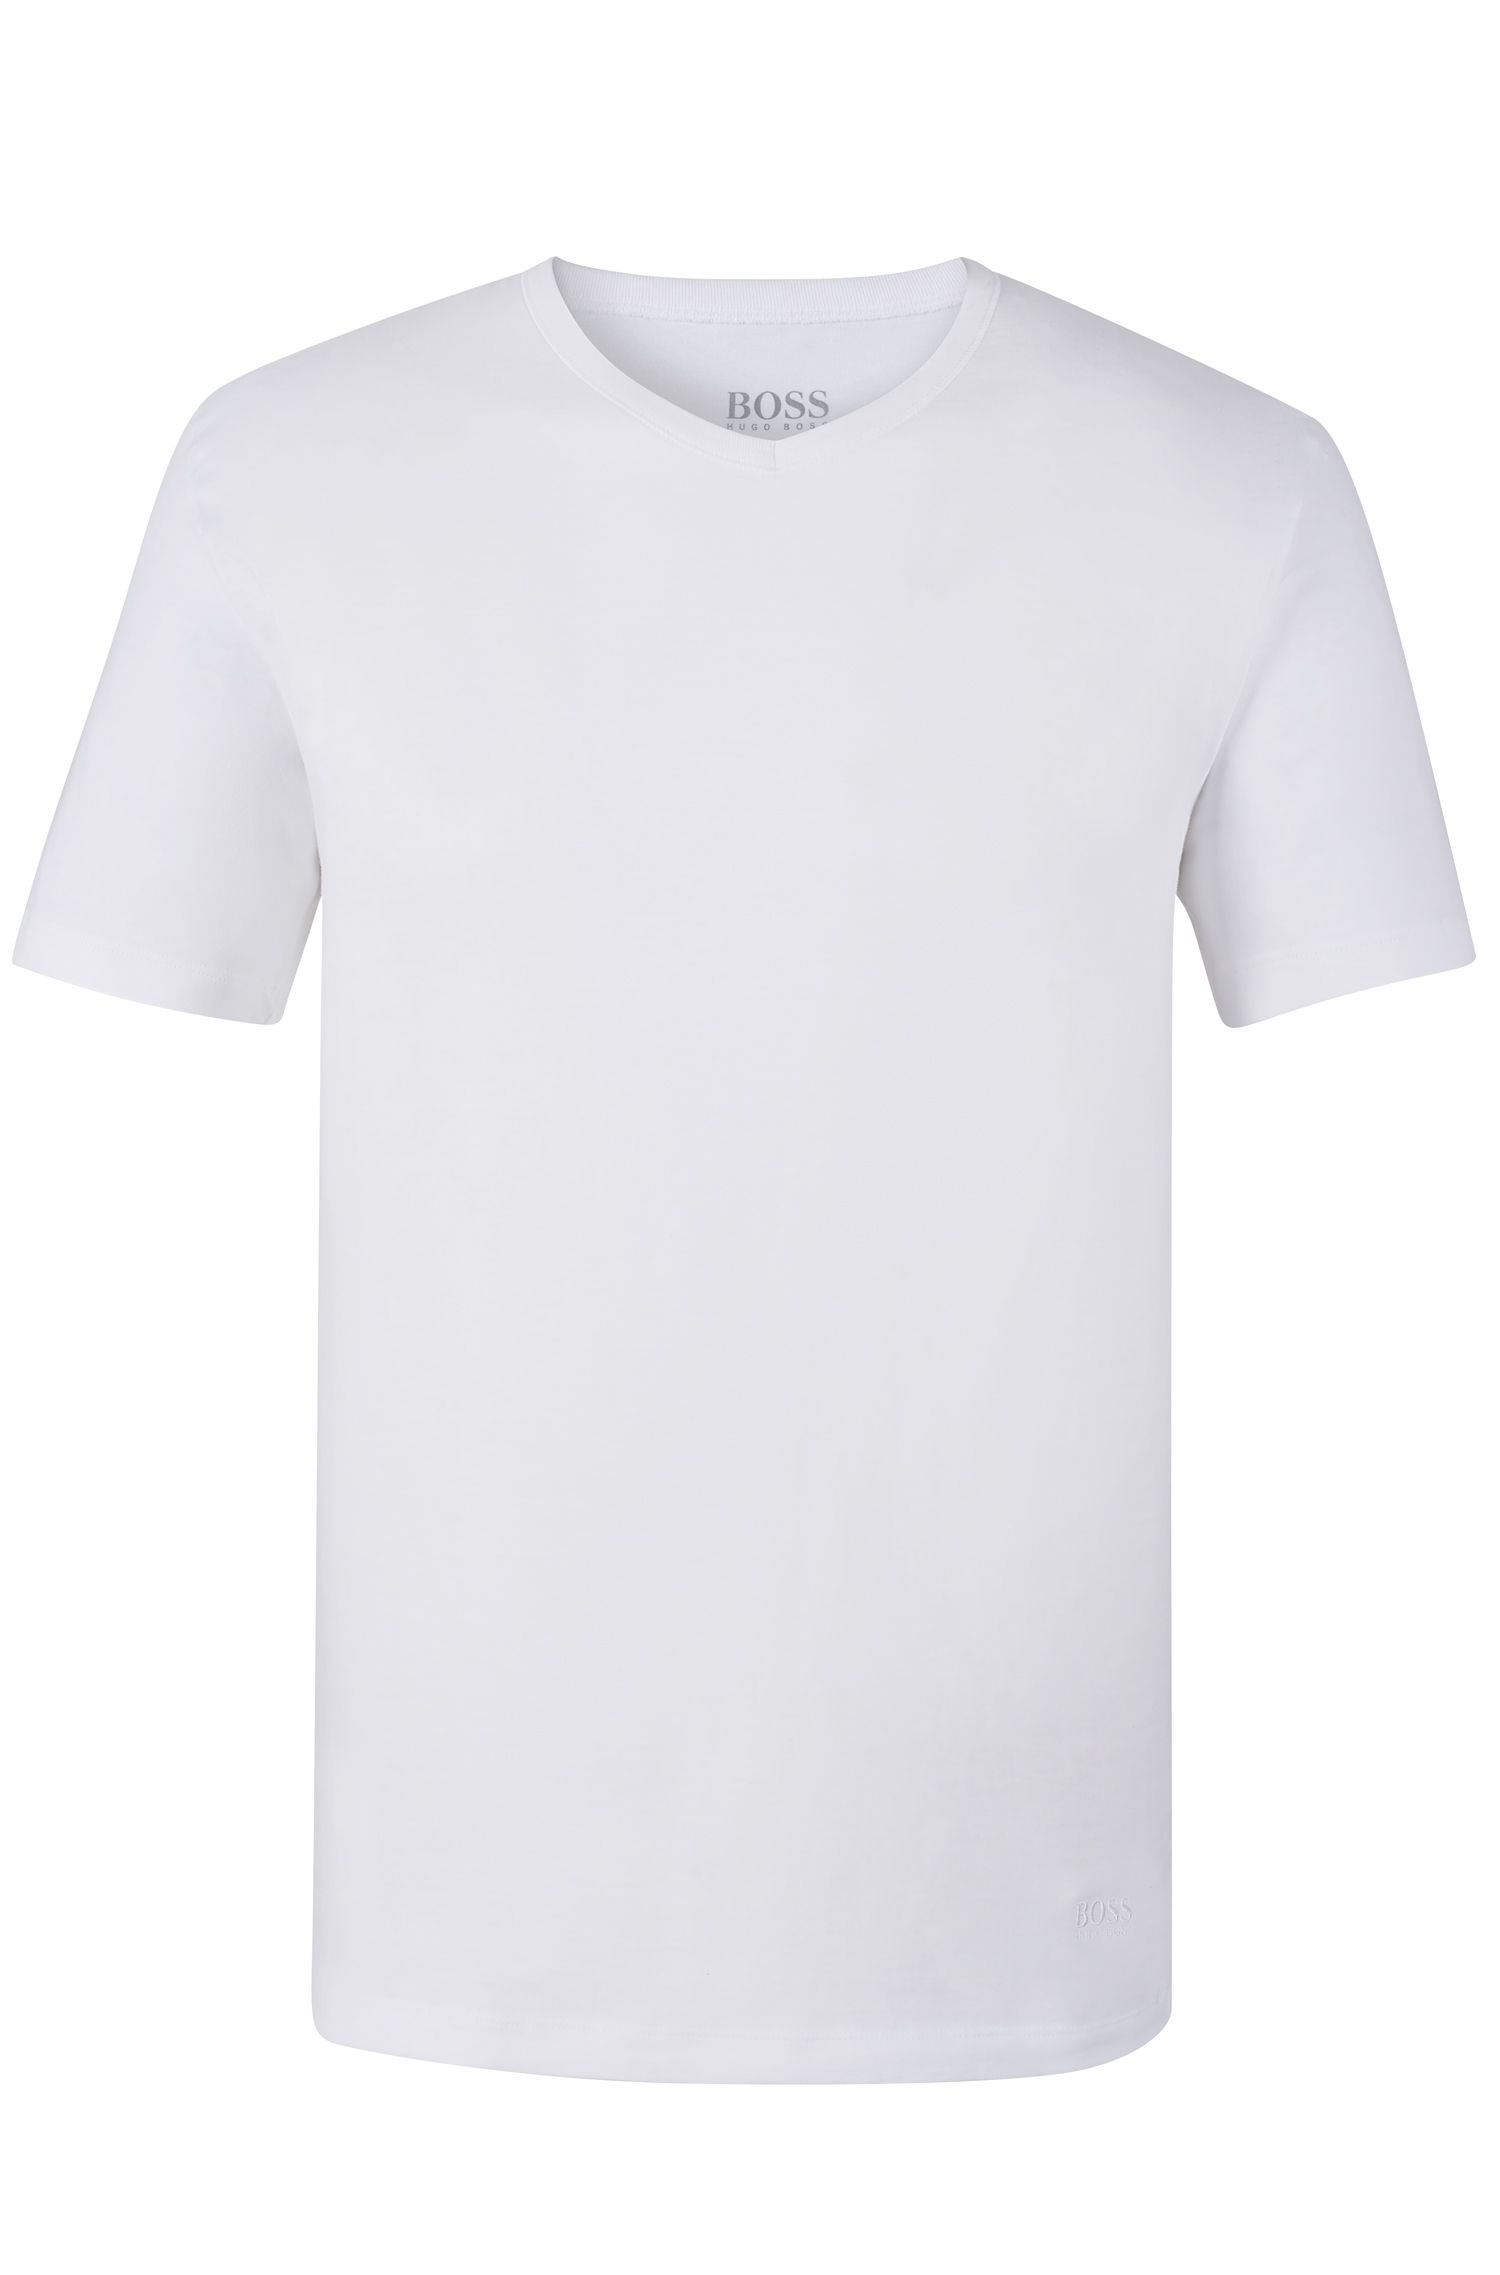 Cotton Jersey T-Shirt, 3-Pack | T-Shirt VN, White